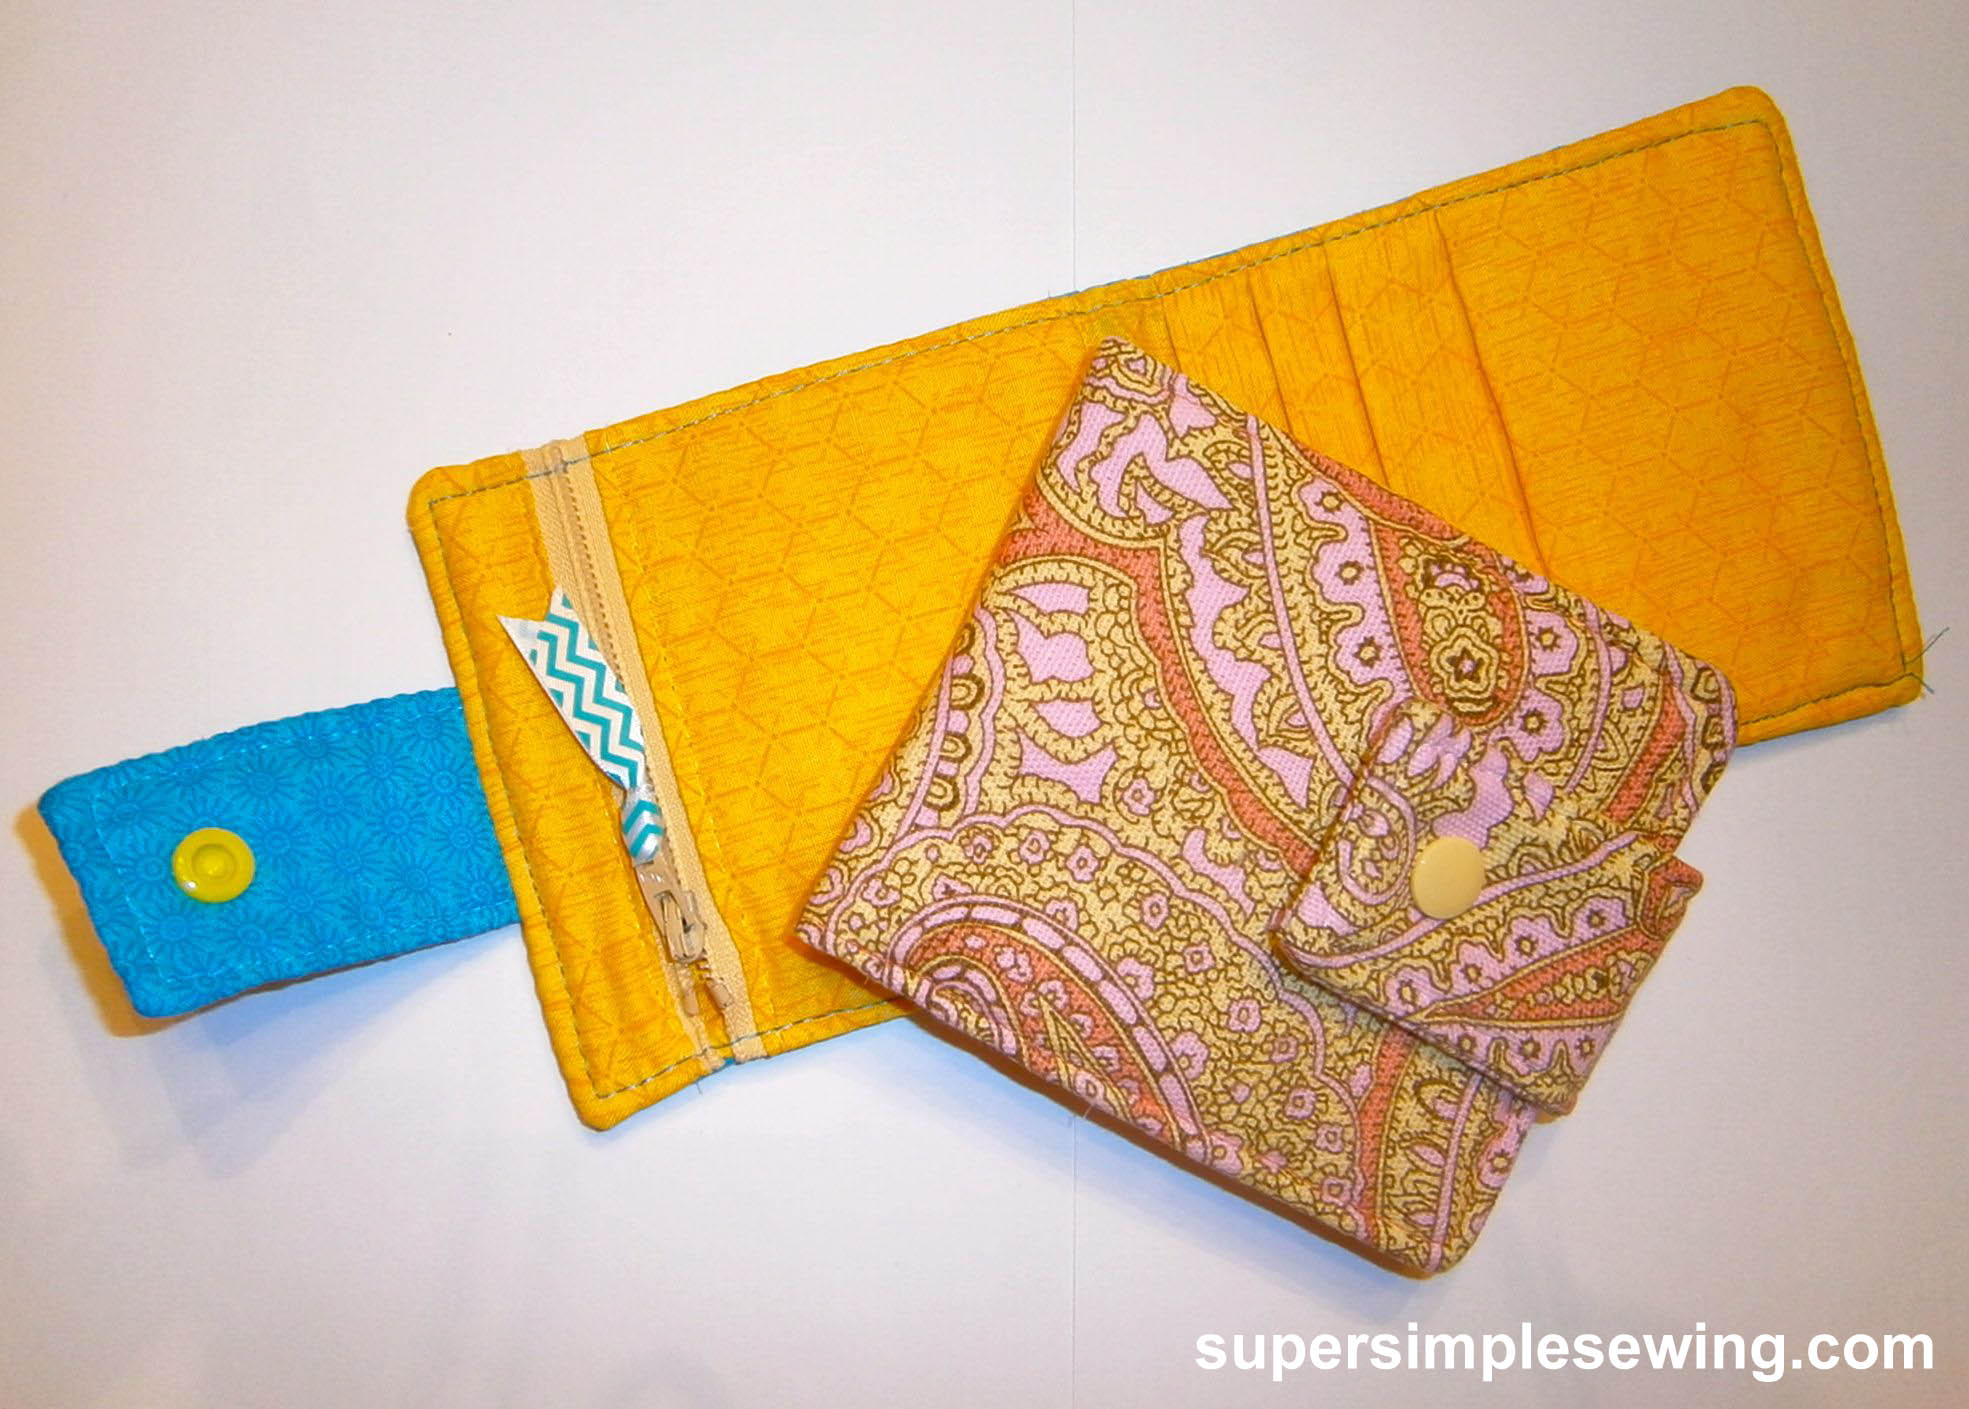 Free sewing pattern and tutorial wallet free sewing pattern and tutorial jeuxipadfo Image collections